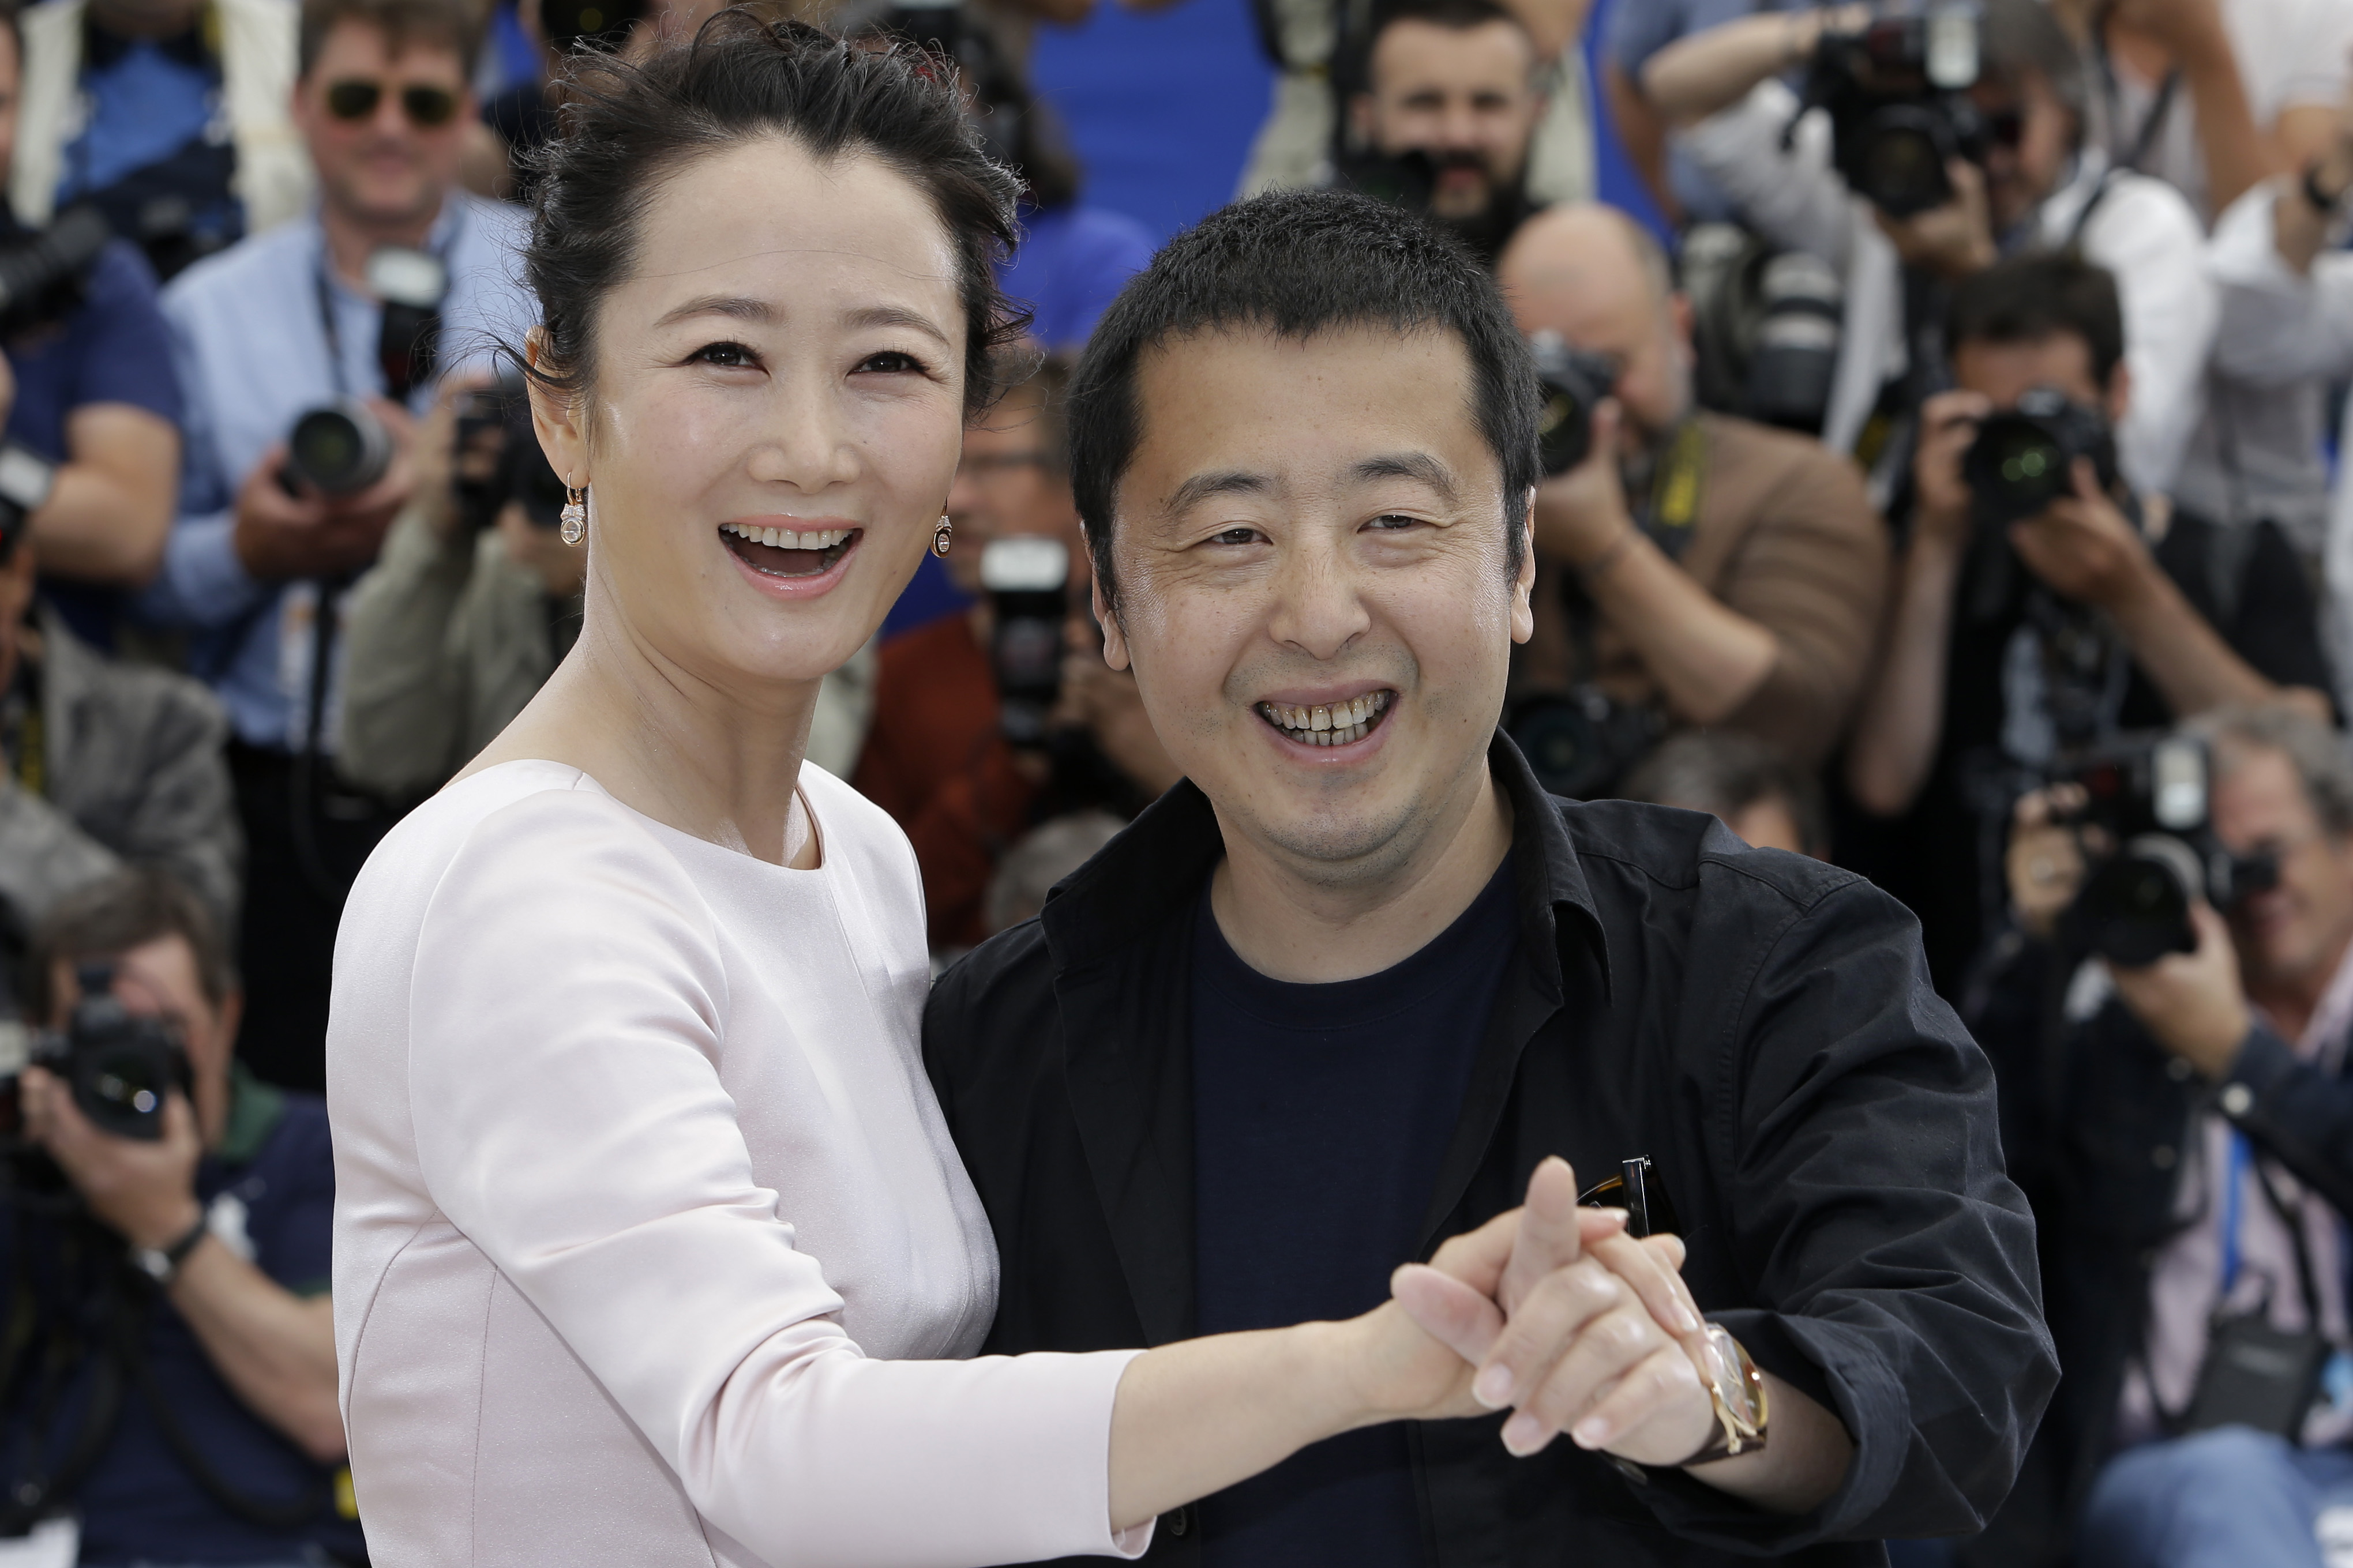 Actress Zhao Tao, left, and director Jia Zhangke pose for photographers during a photo call for the film Shan He Gu Ren (Mountains May Depart), at the 68th international film festival, Cannes, southern France France Cannes Mountains May Depart Photo Call, Cannes, France